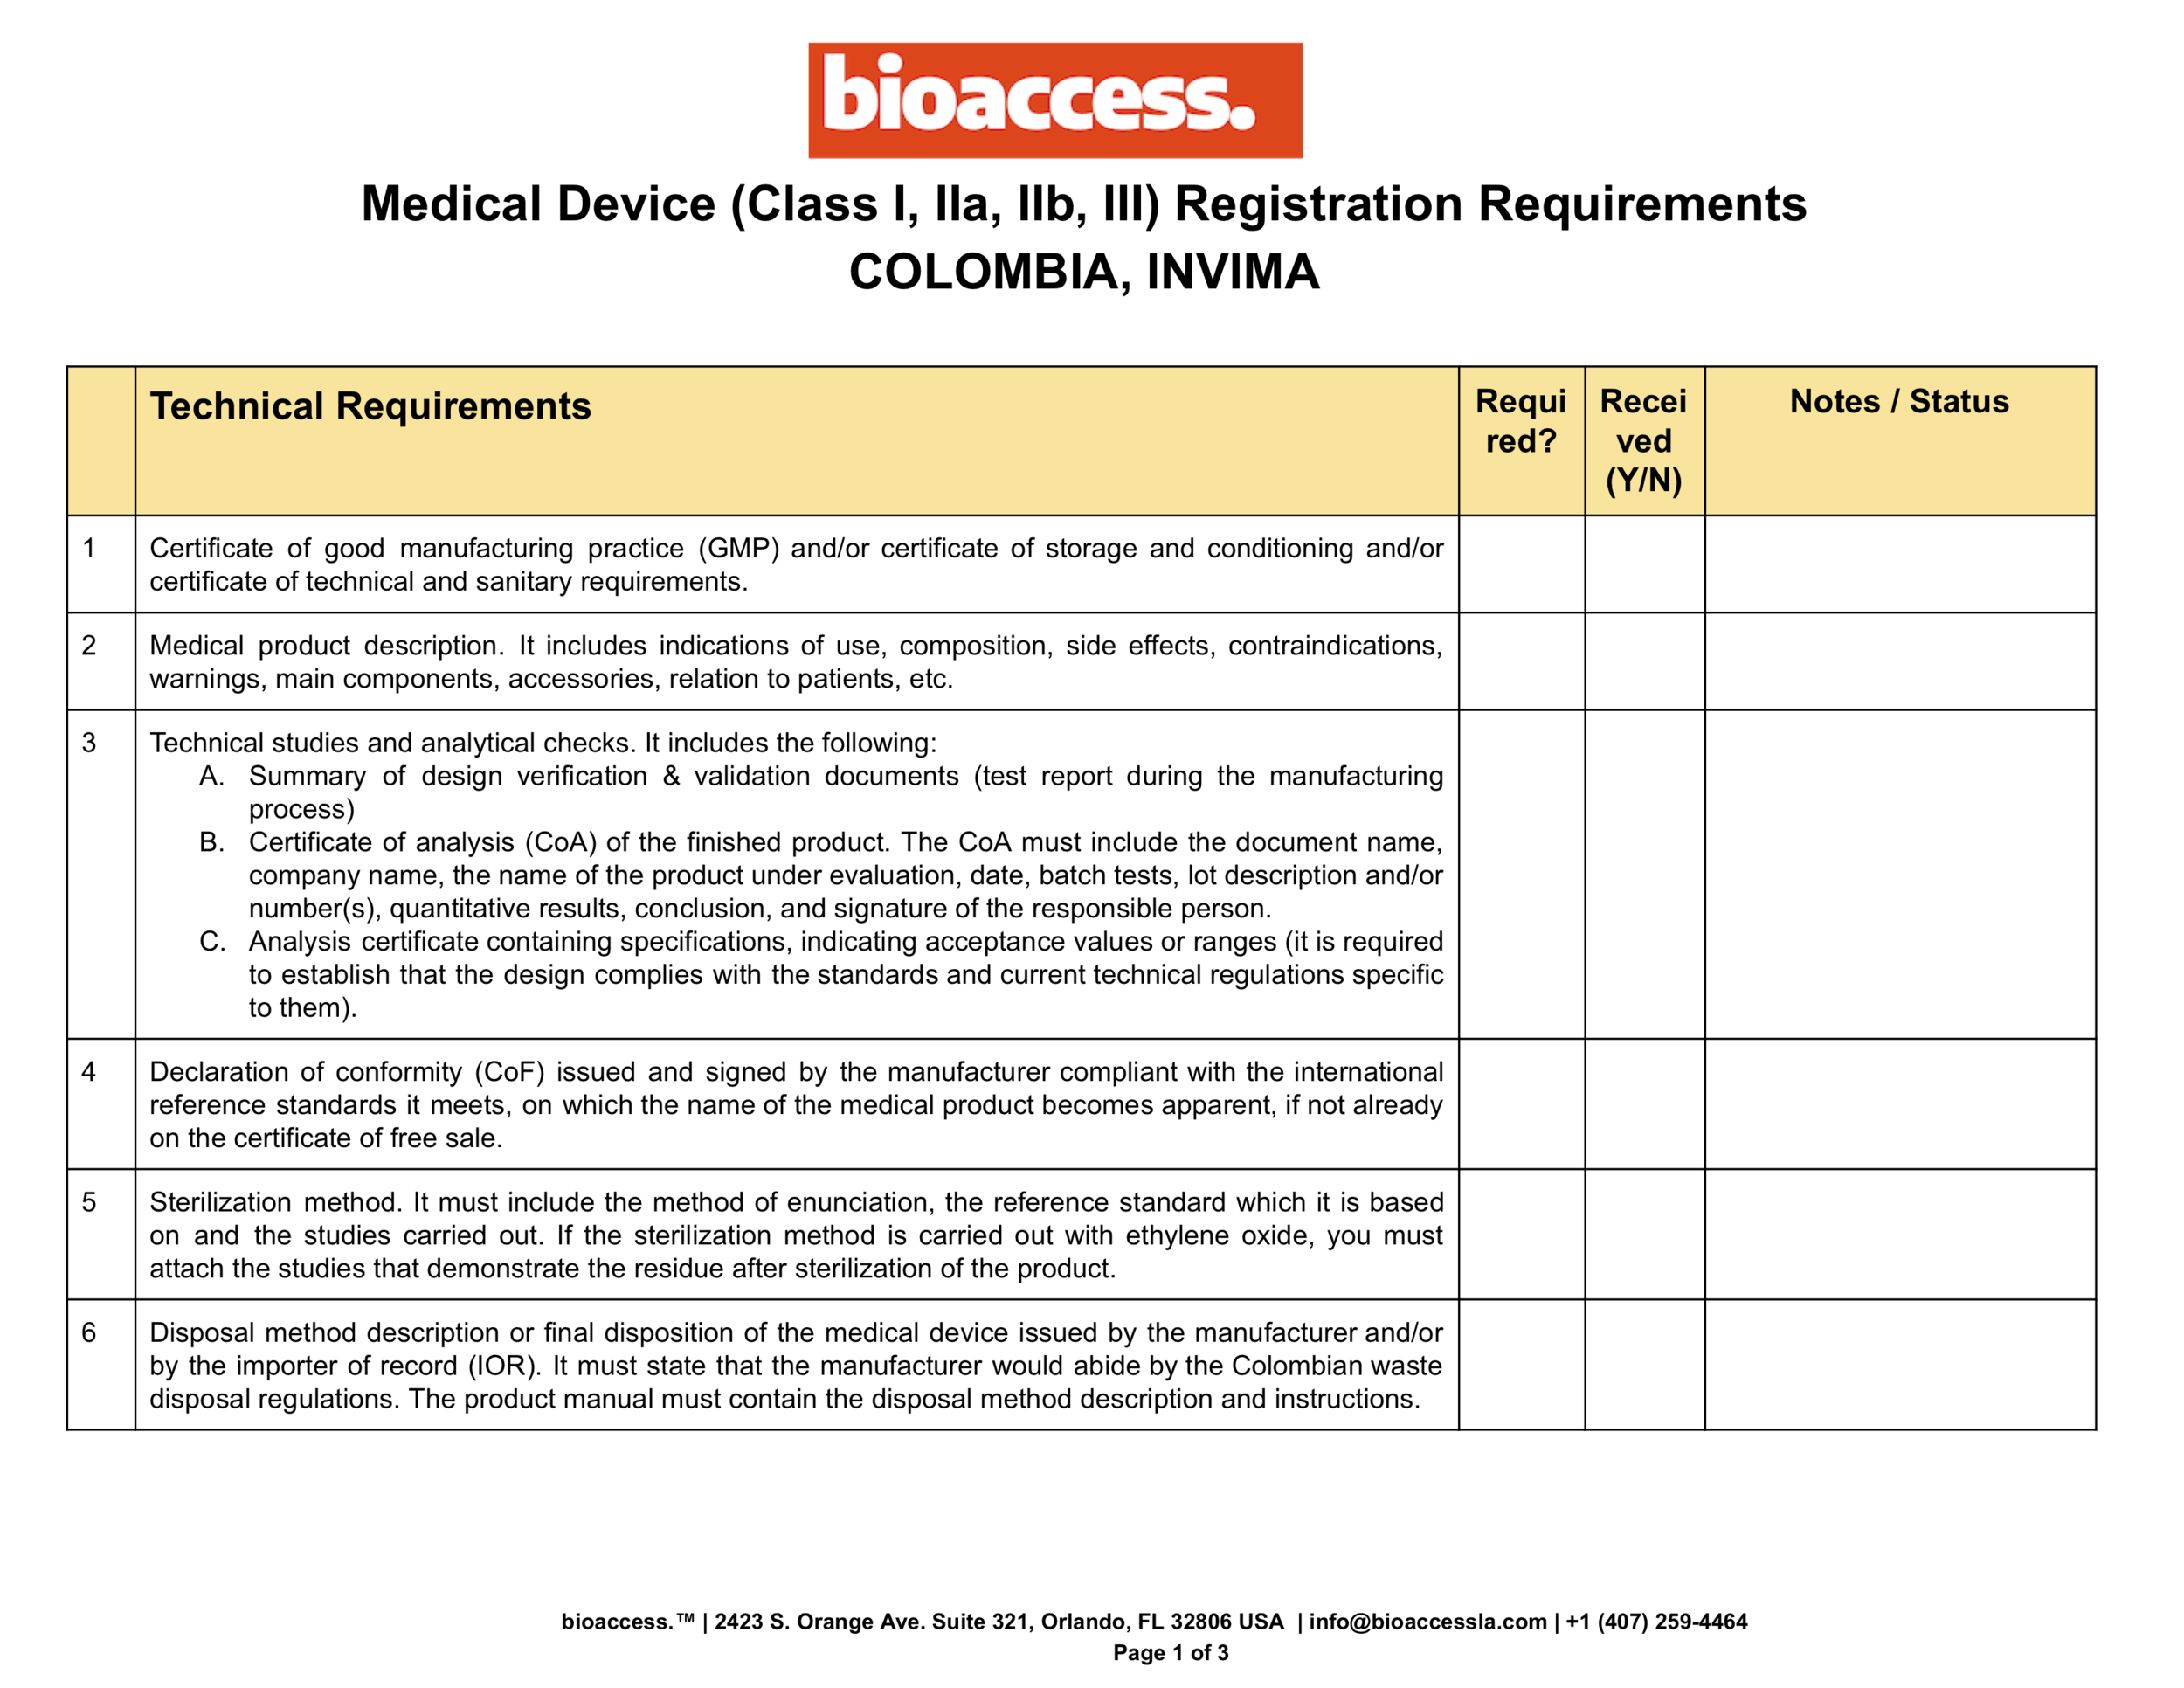 Frequently Asked Questions About Medical Device INVIMA